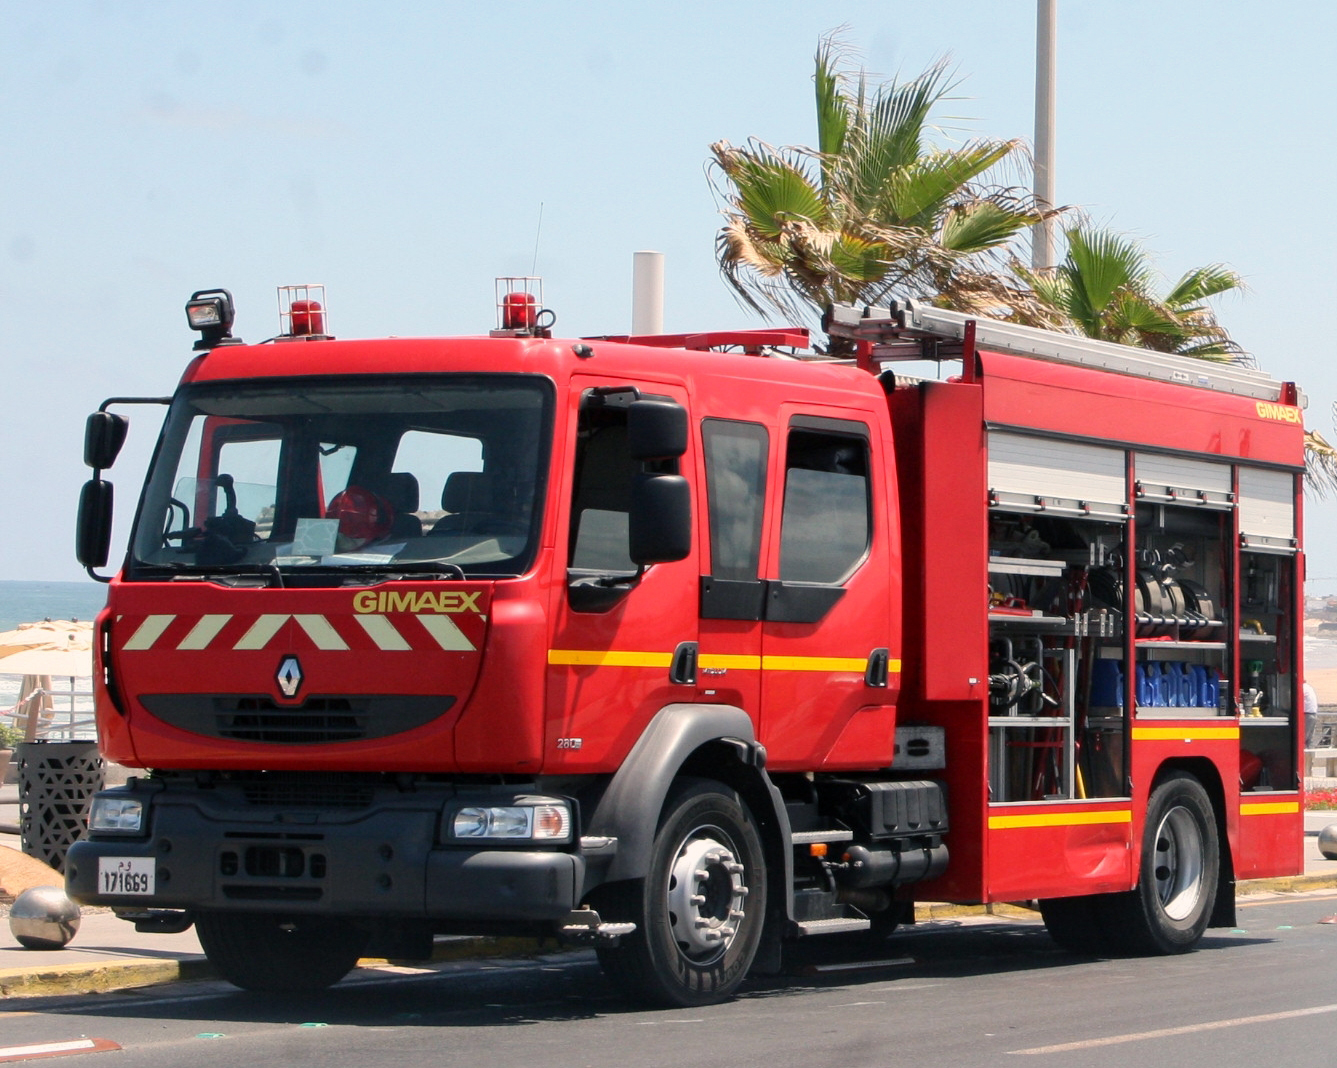 Photos - Protection civile - Page 33 150912063705431203